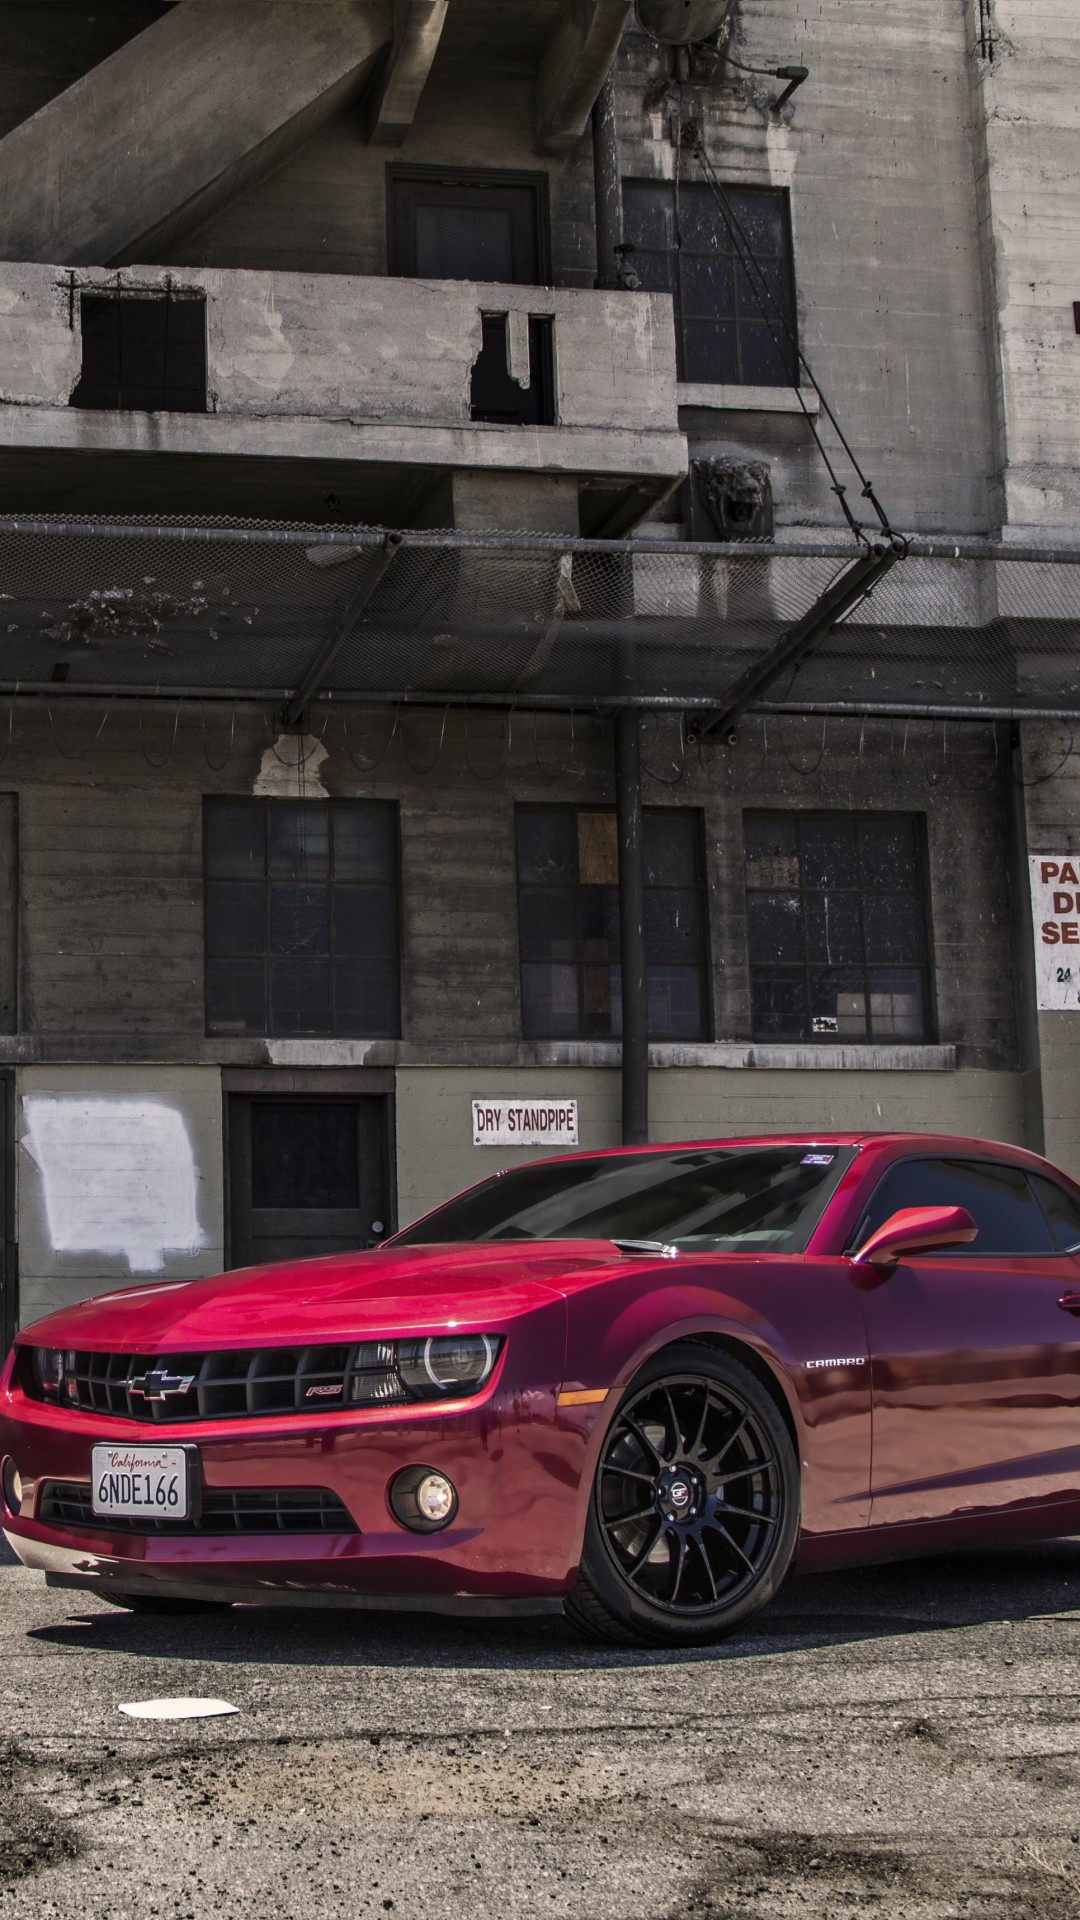 Red Chevrolet Camaro RS Wallpaper for SAMSUNG Galaxy S4